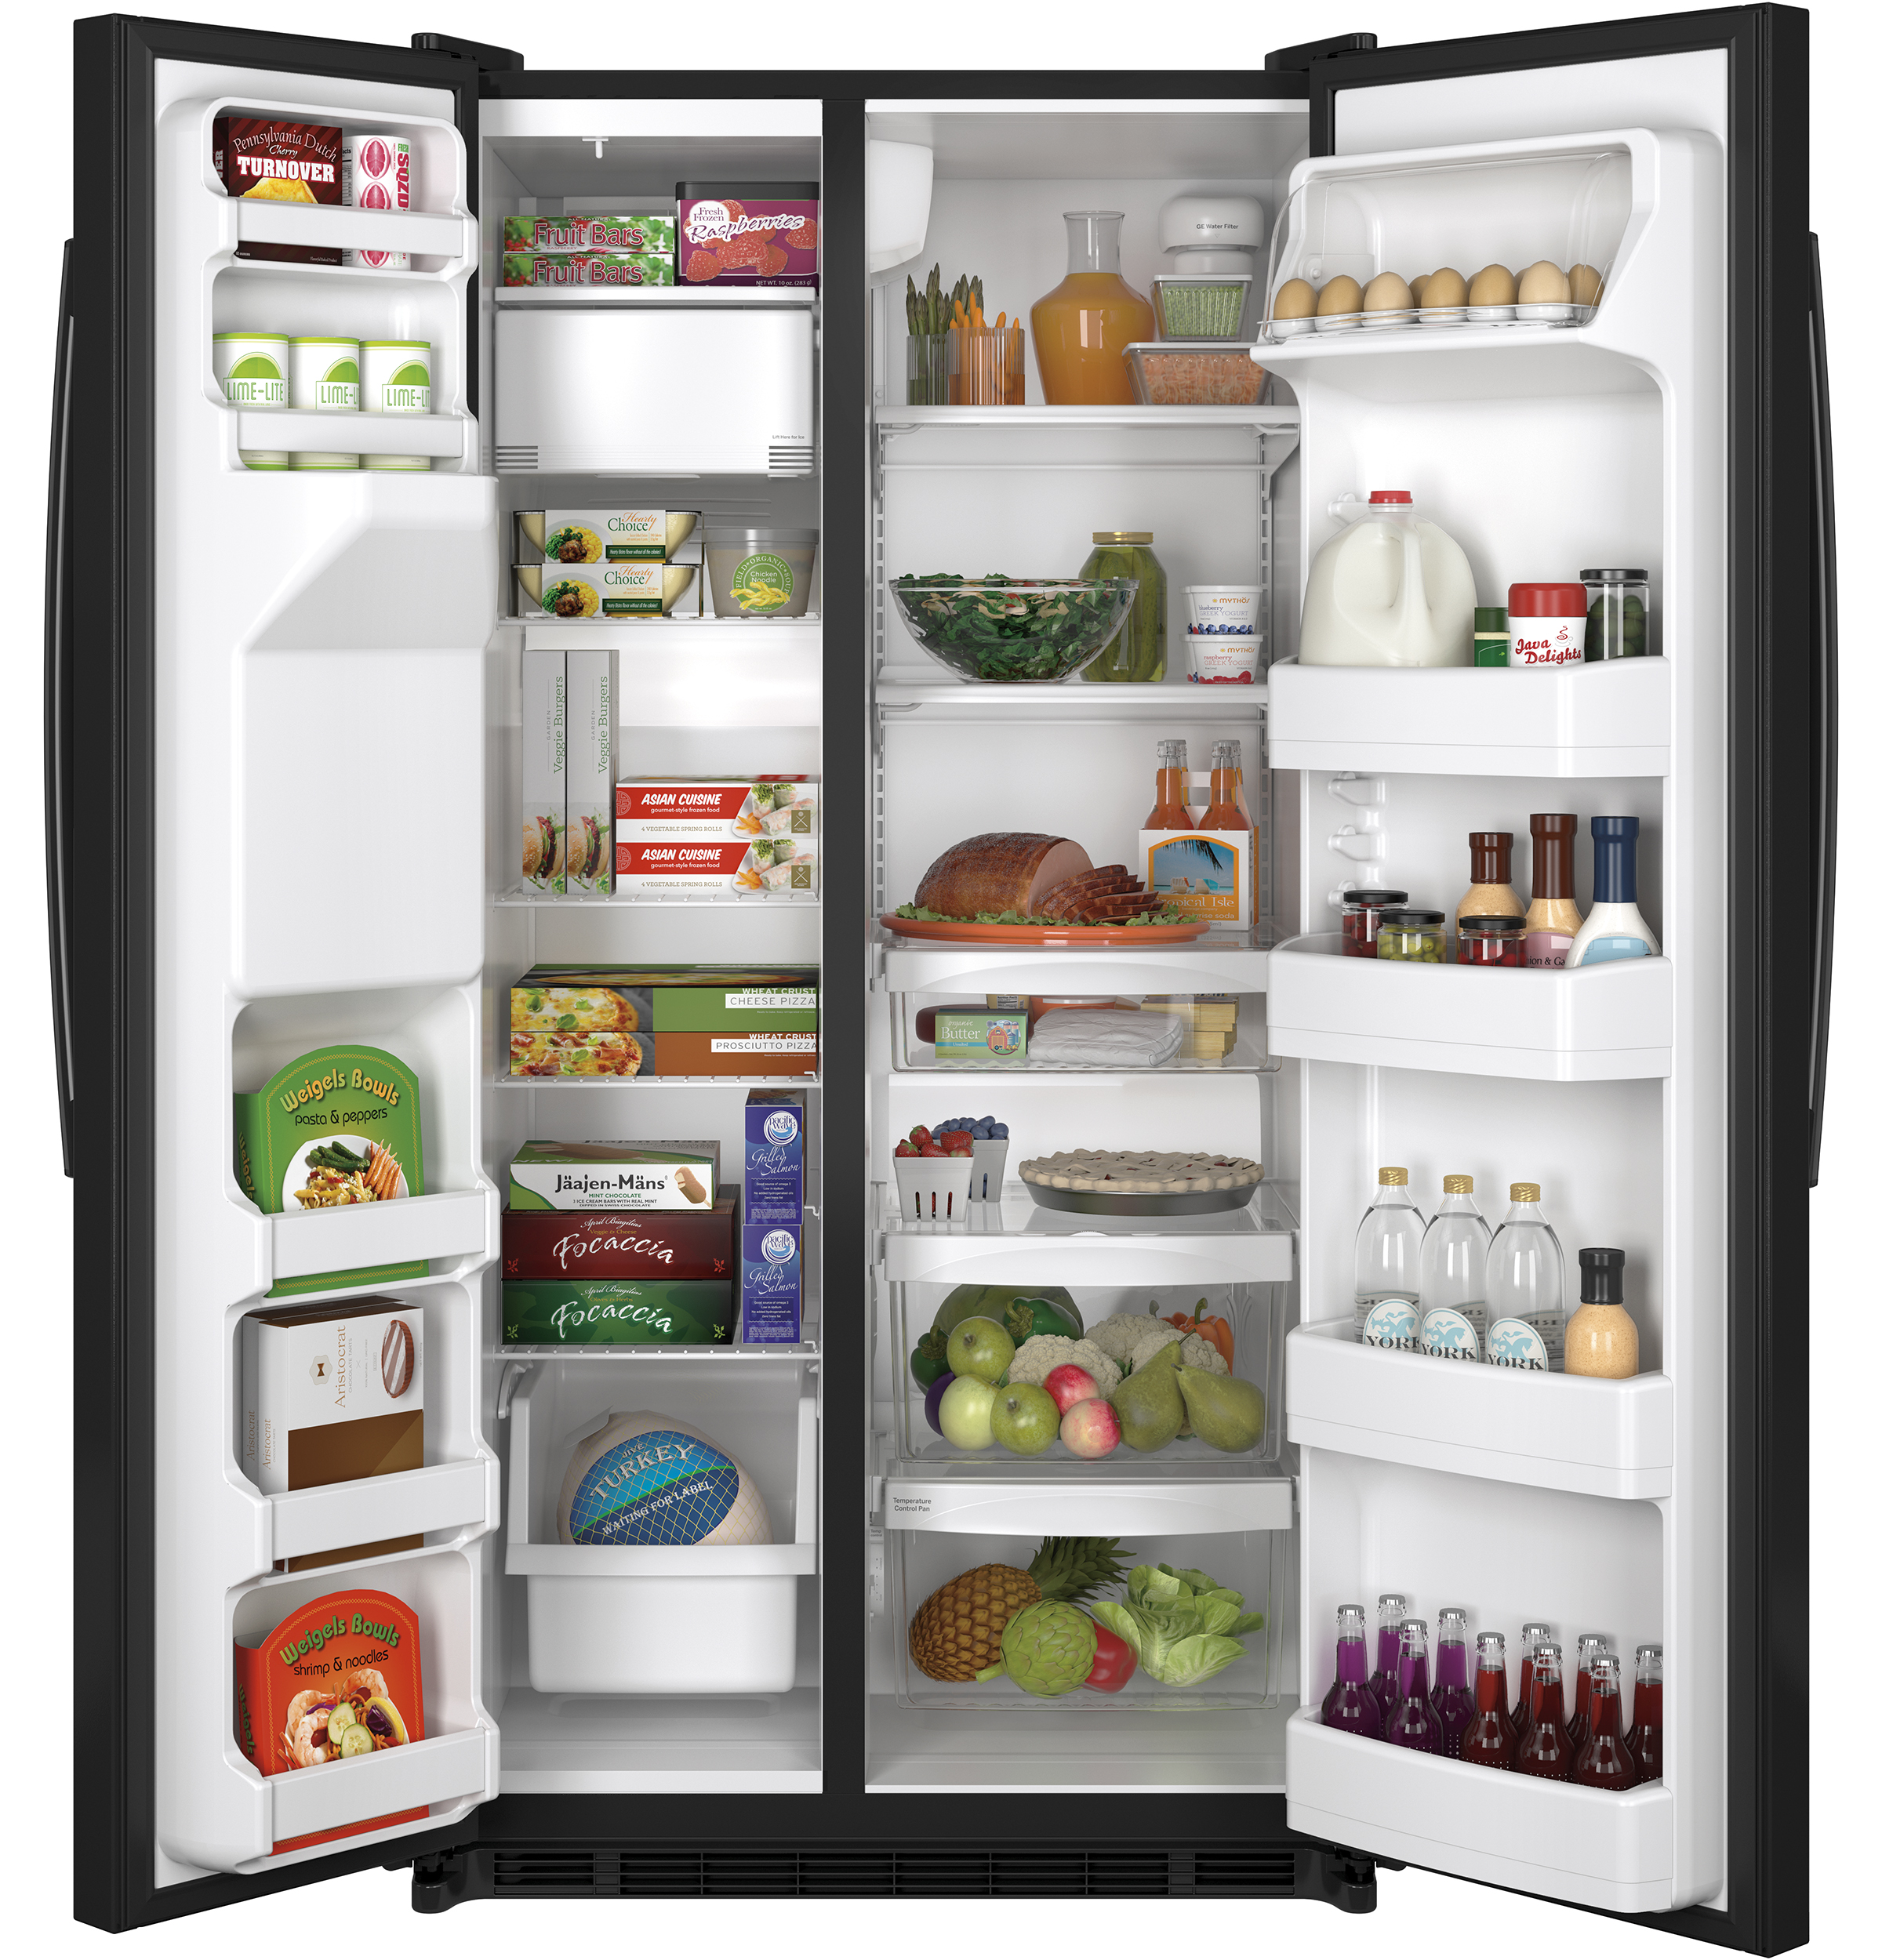 GE Appliances 25.4 cu. ft. Side-by-Side Refrigerator - Black